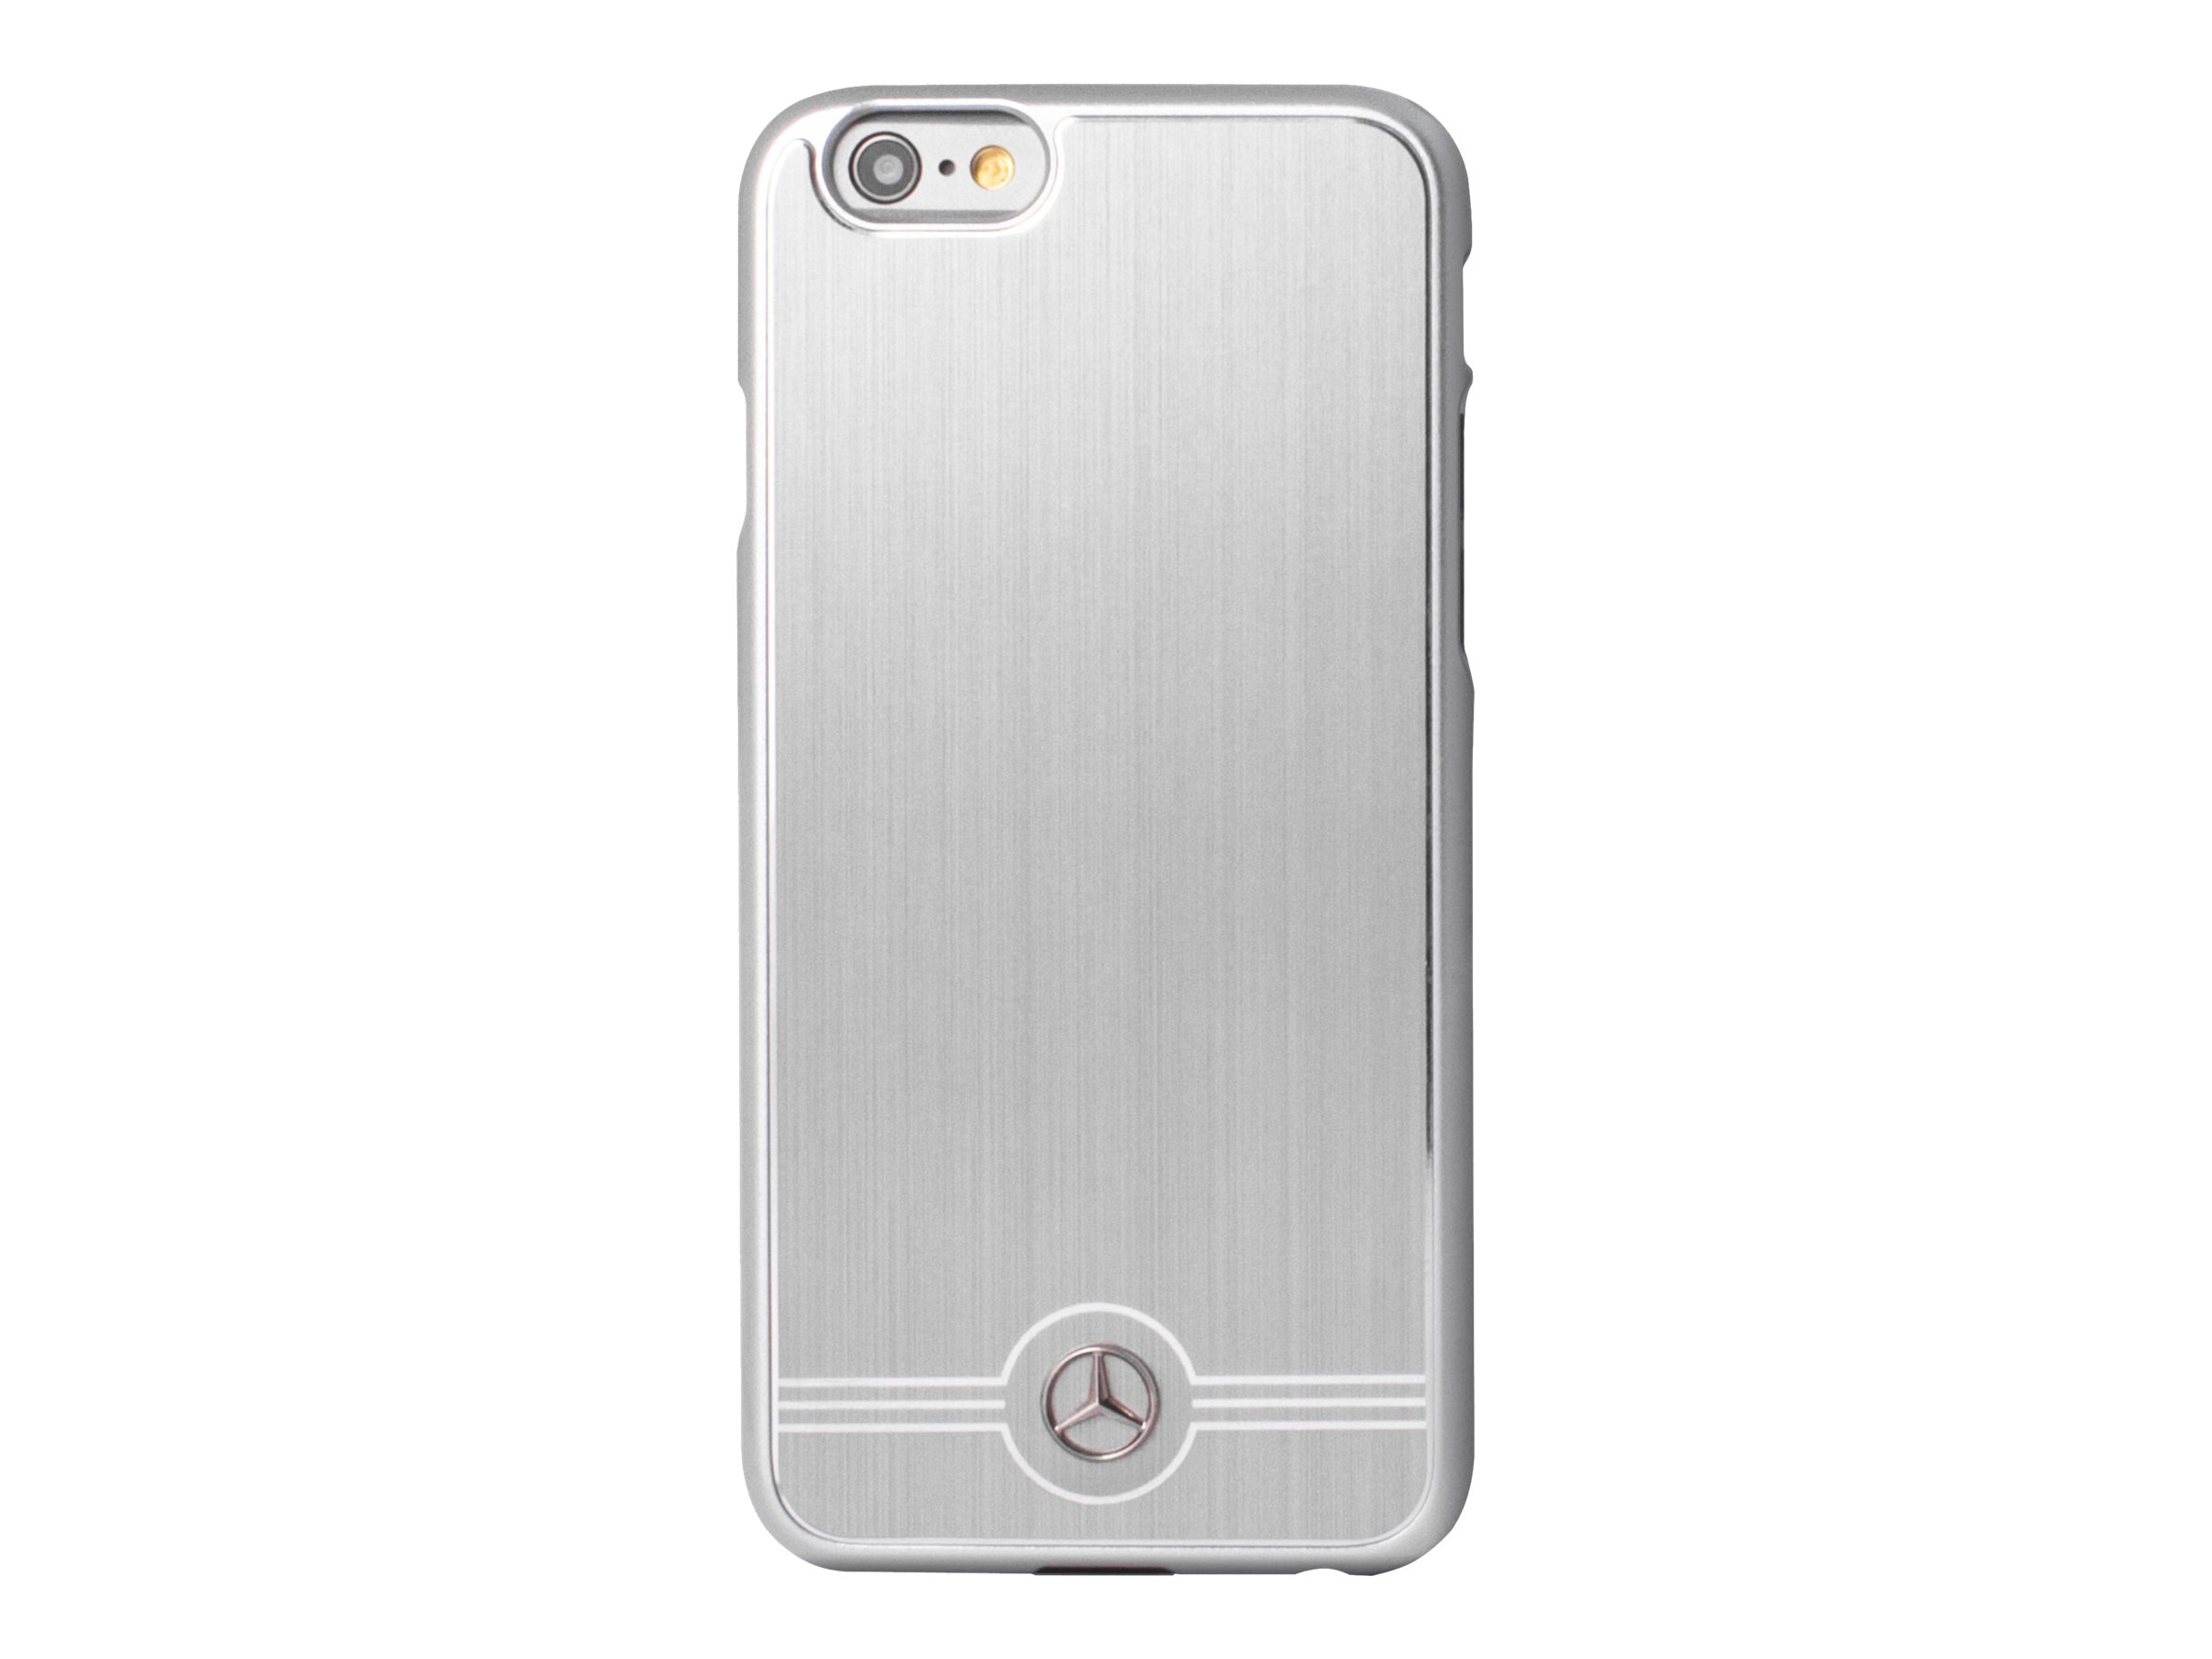 MERCEDES - Coque de protection pour iPhone 6 Plus, 6s Plus - aluminium - gris